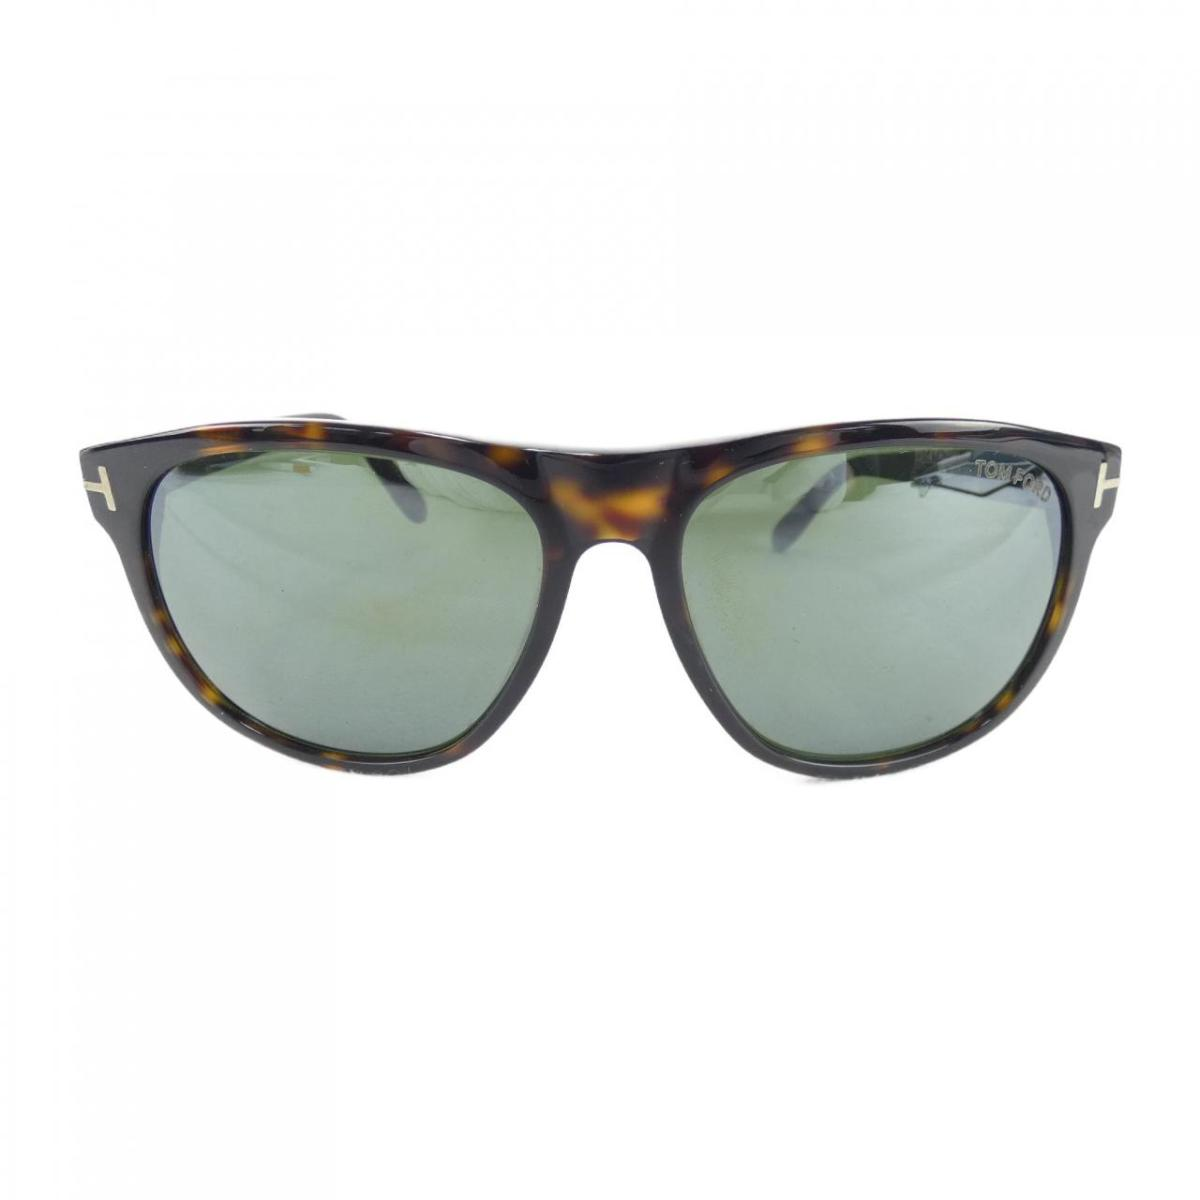 トムフォード TOM FORD SUNGLASSES TF236【中古】